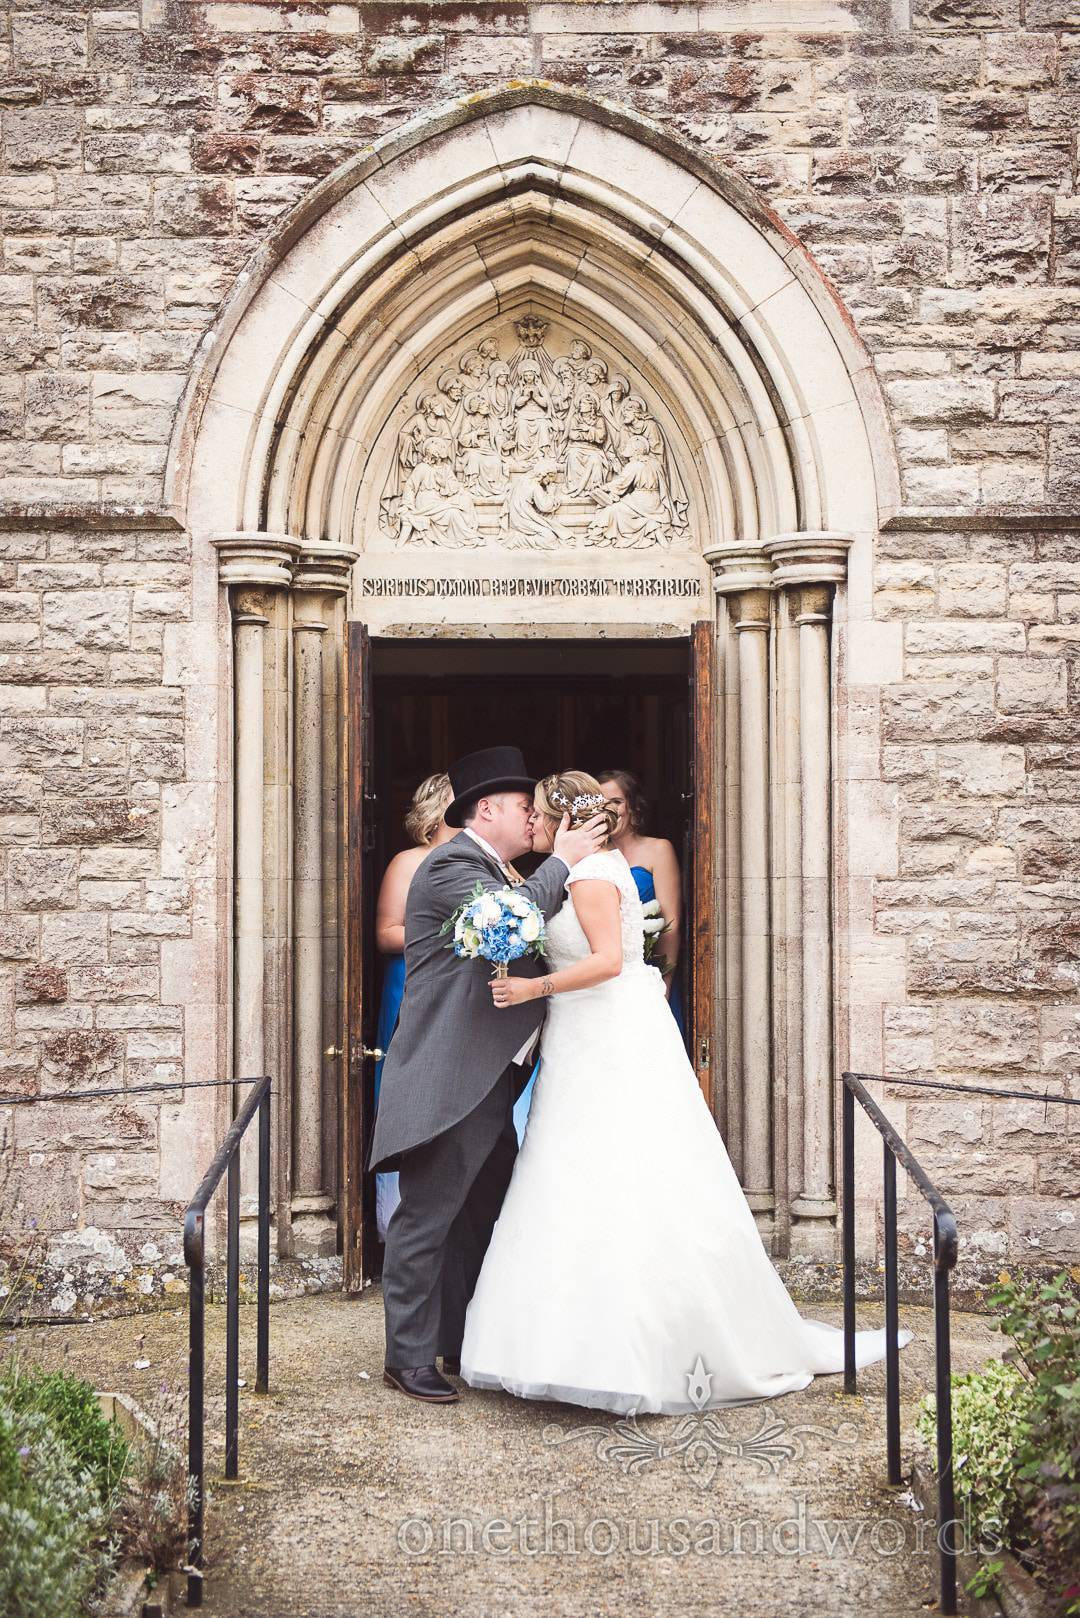 Bride and groom kiss outside Swanage Catholic church with stone archway door